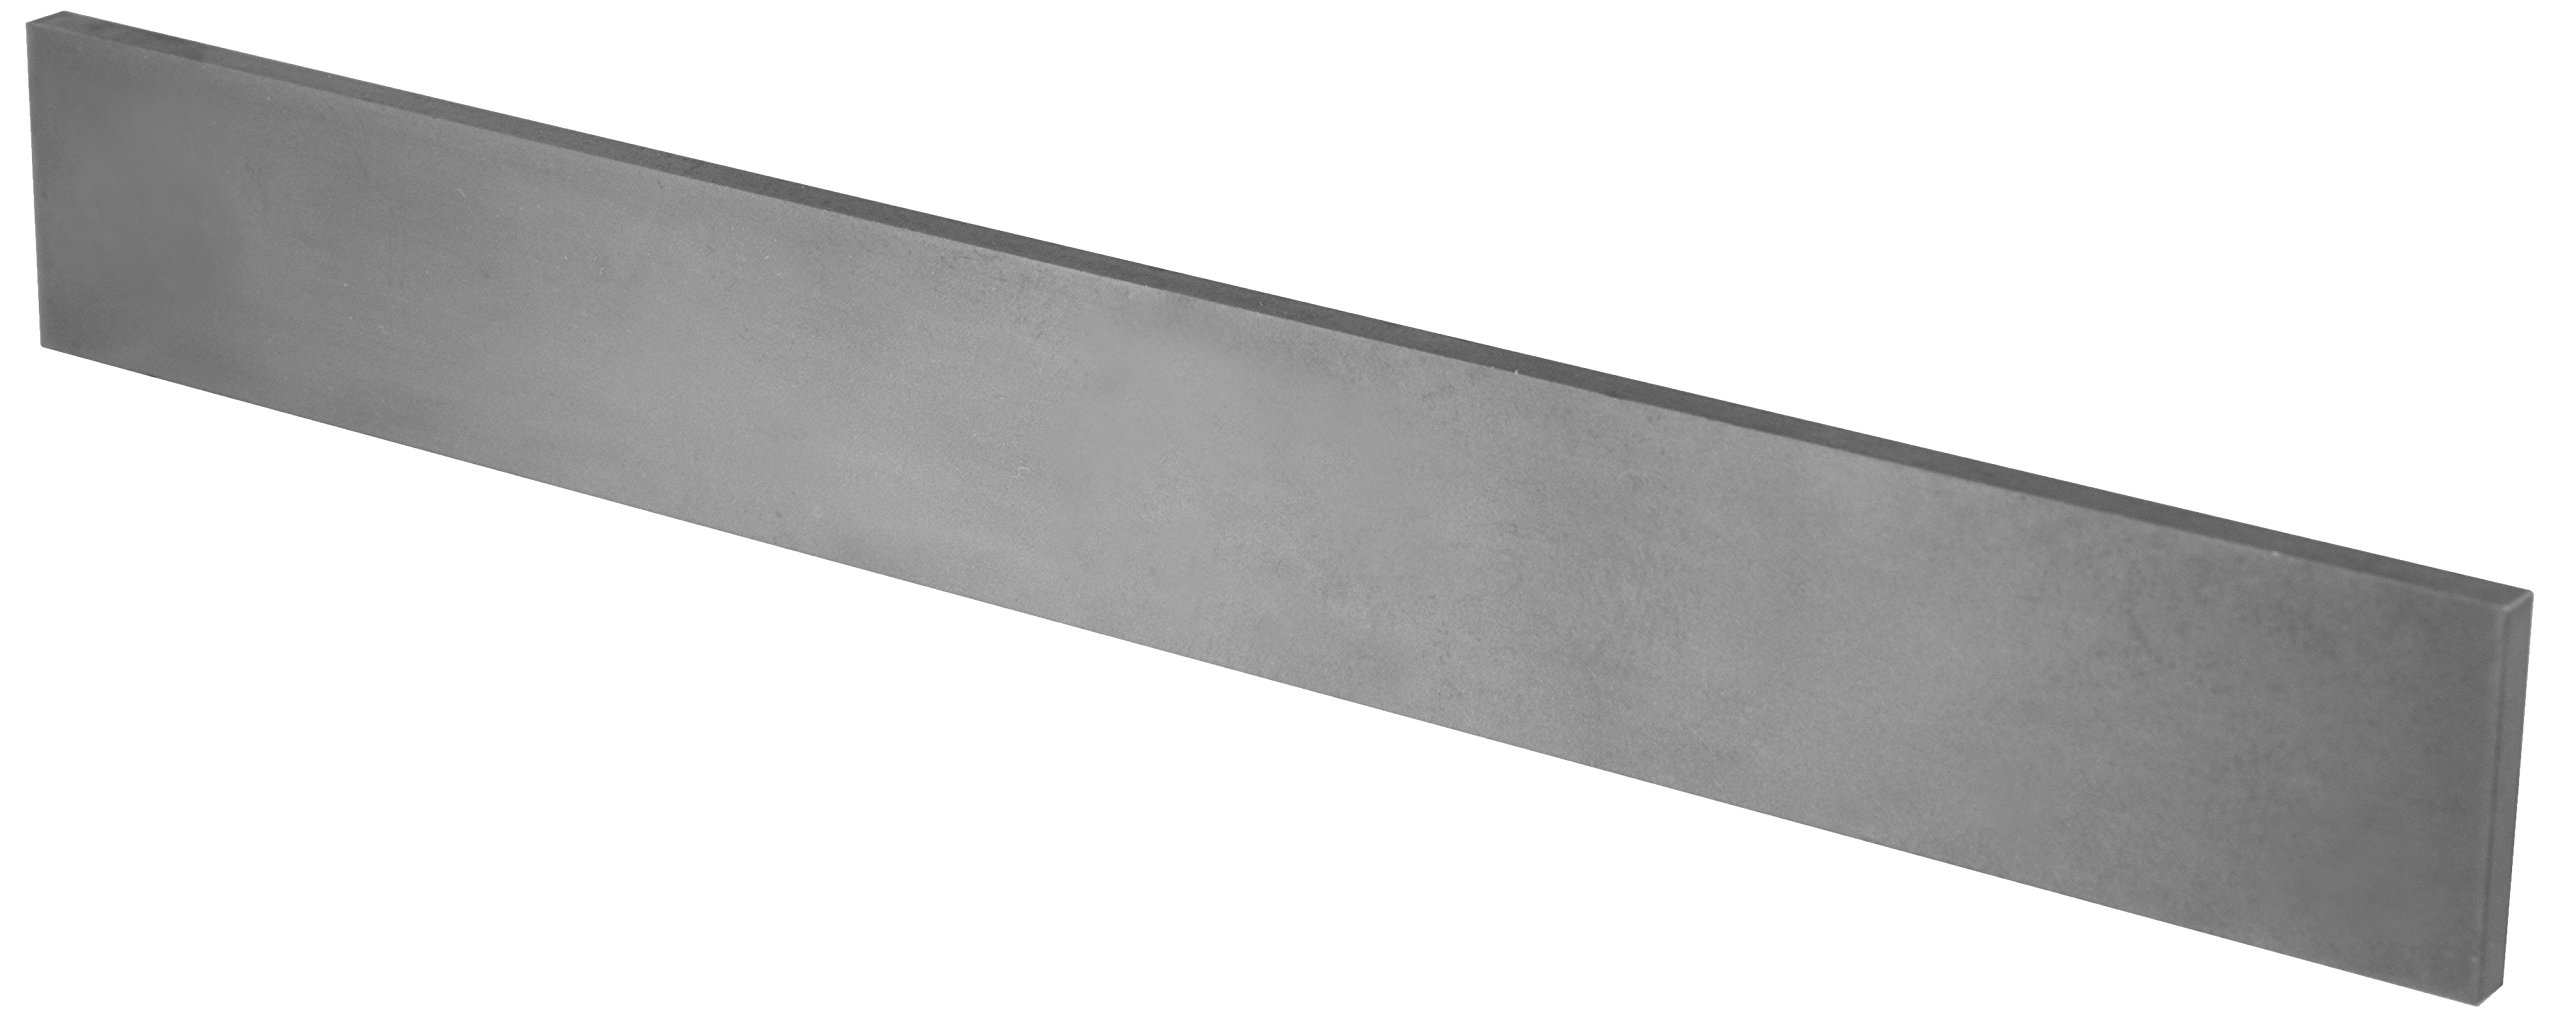 Ultra-Met STB412C-Z9 Carbide Blank (Unground), Grade Z9, 6'' Length x 3/8'' Width x 1/8'' Thickness by Ultra-Met